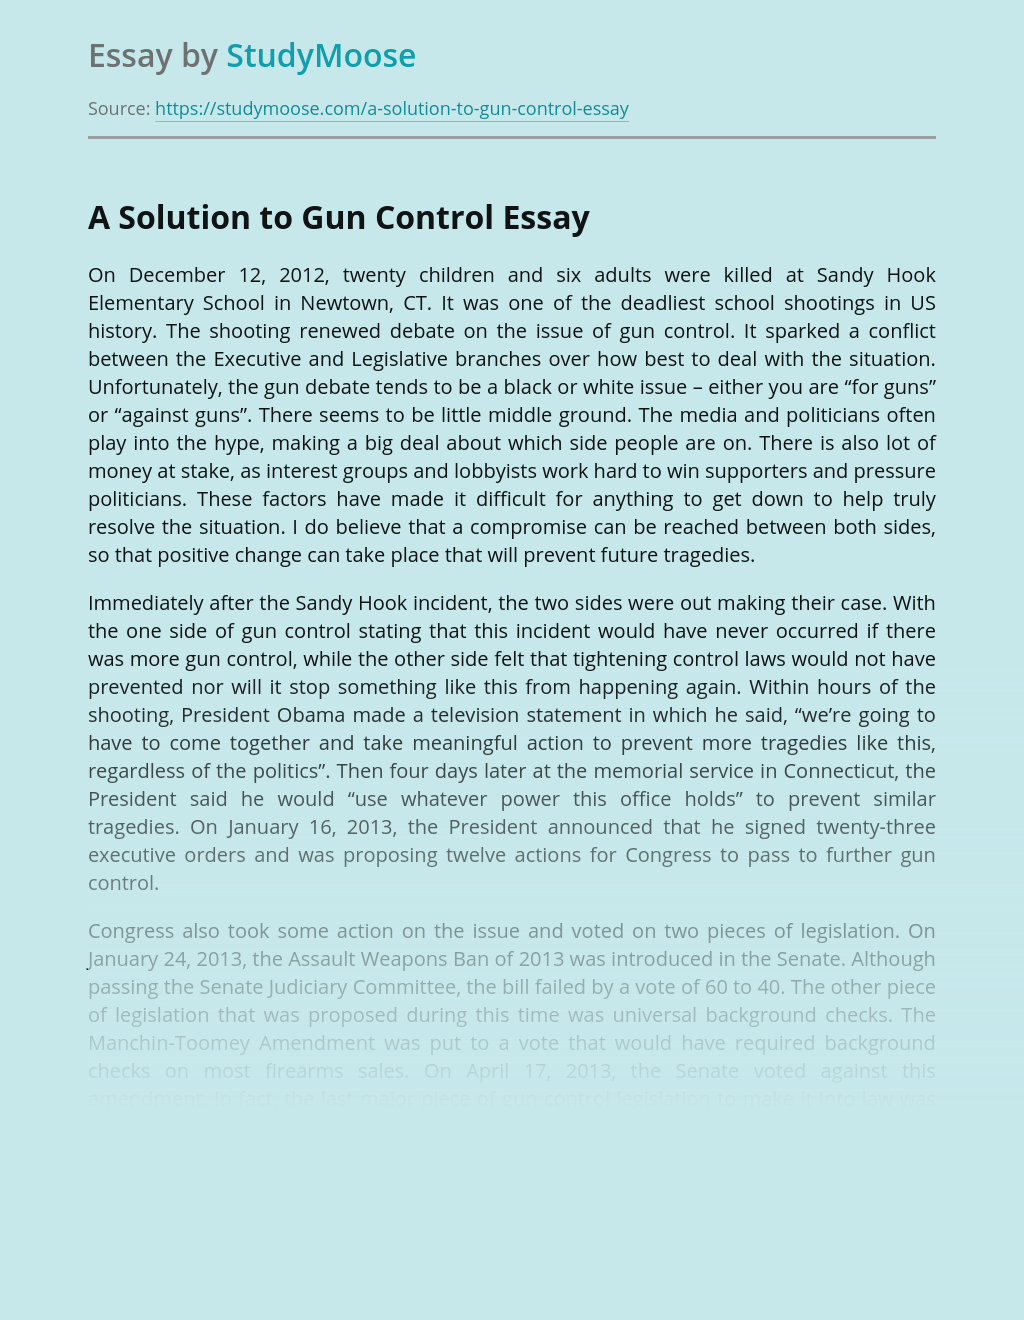 A Solution to Gun Control